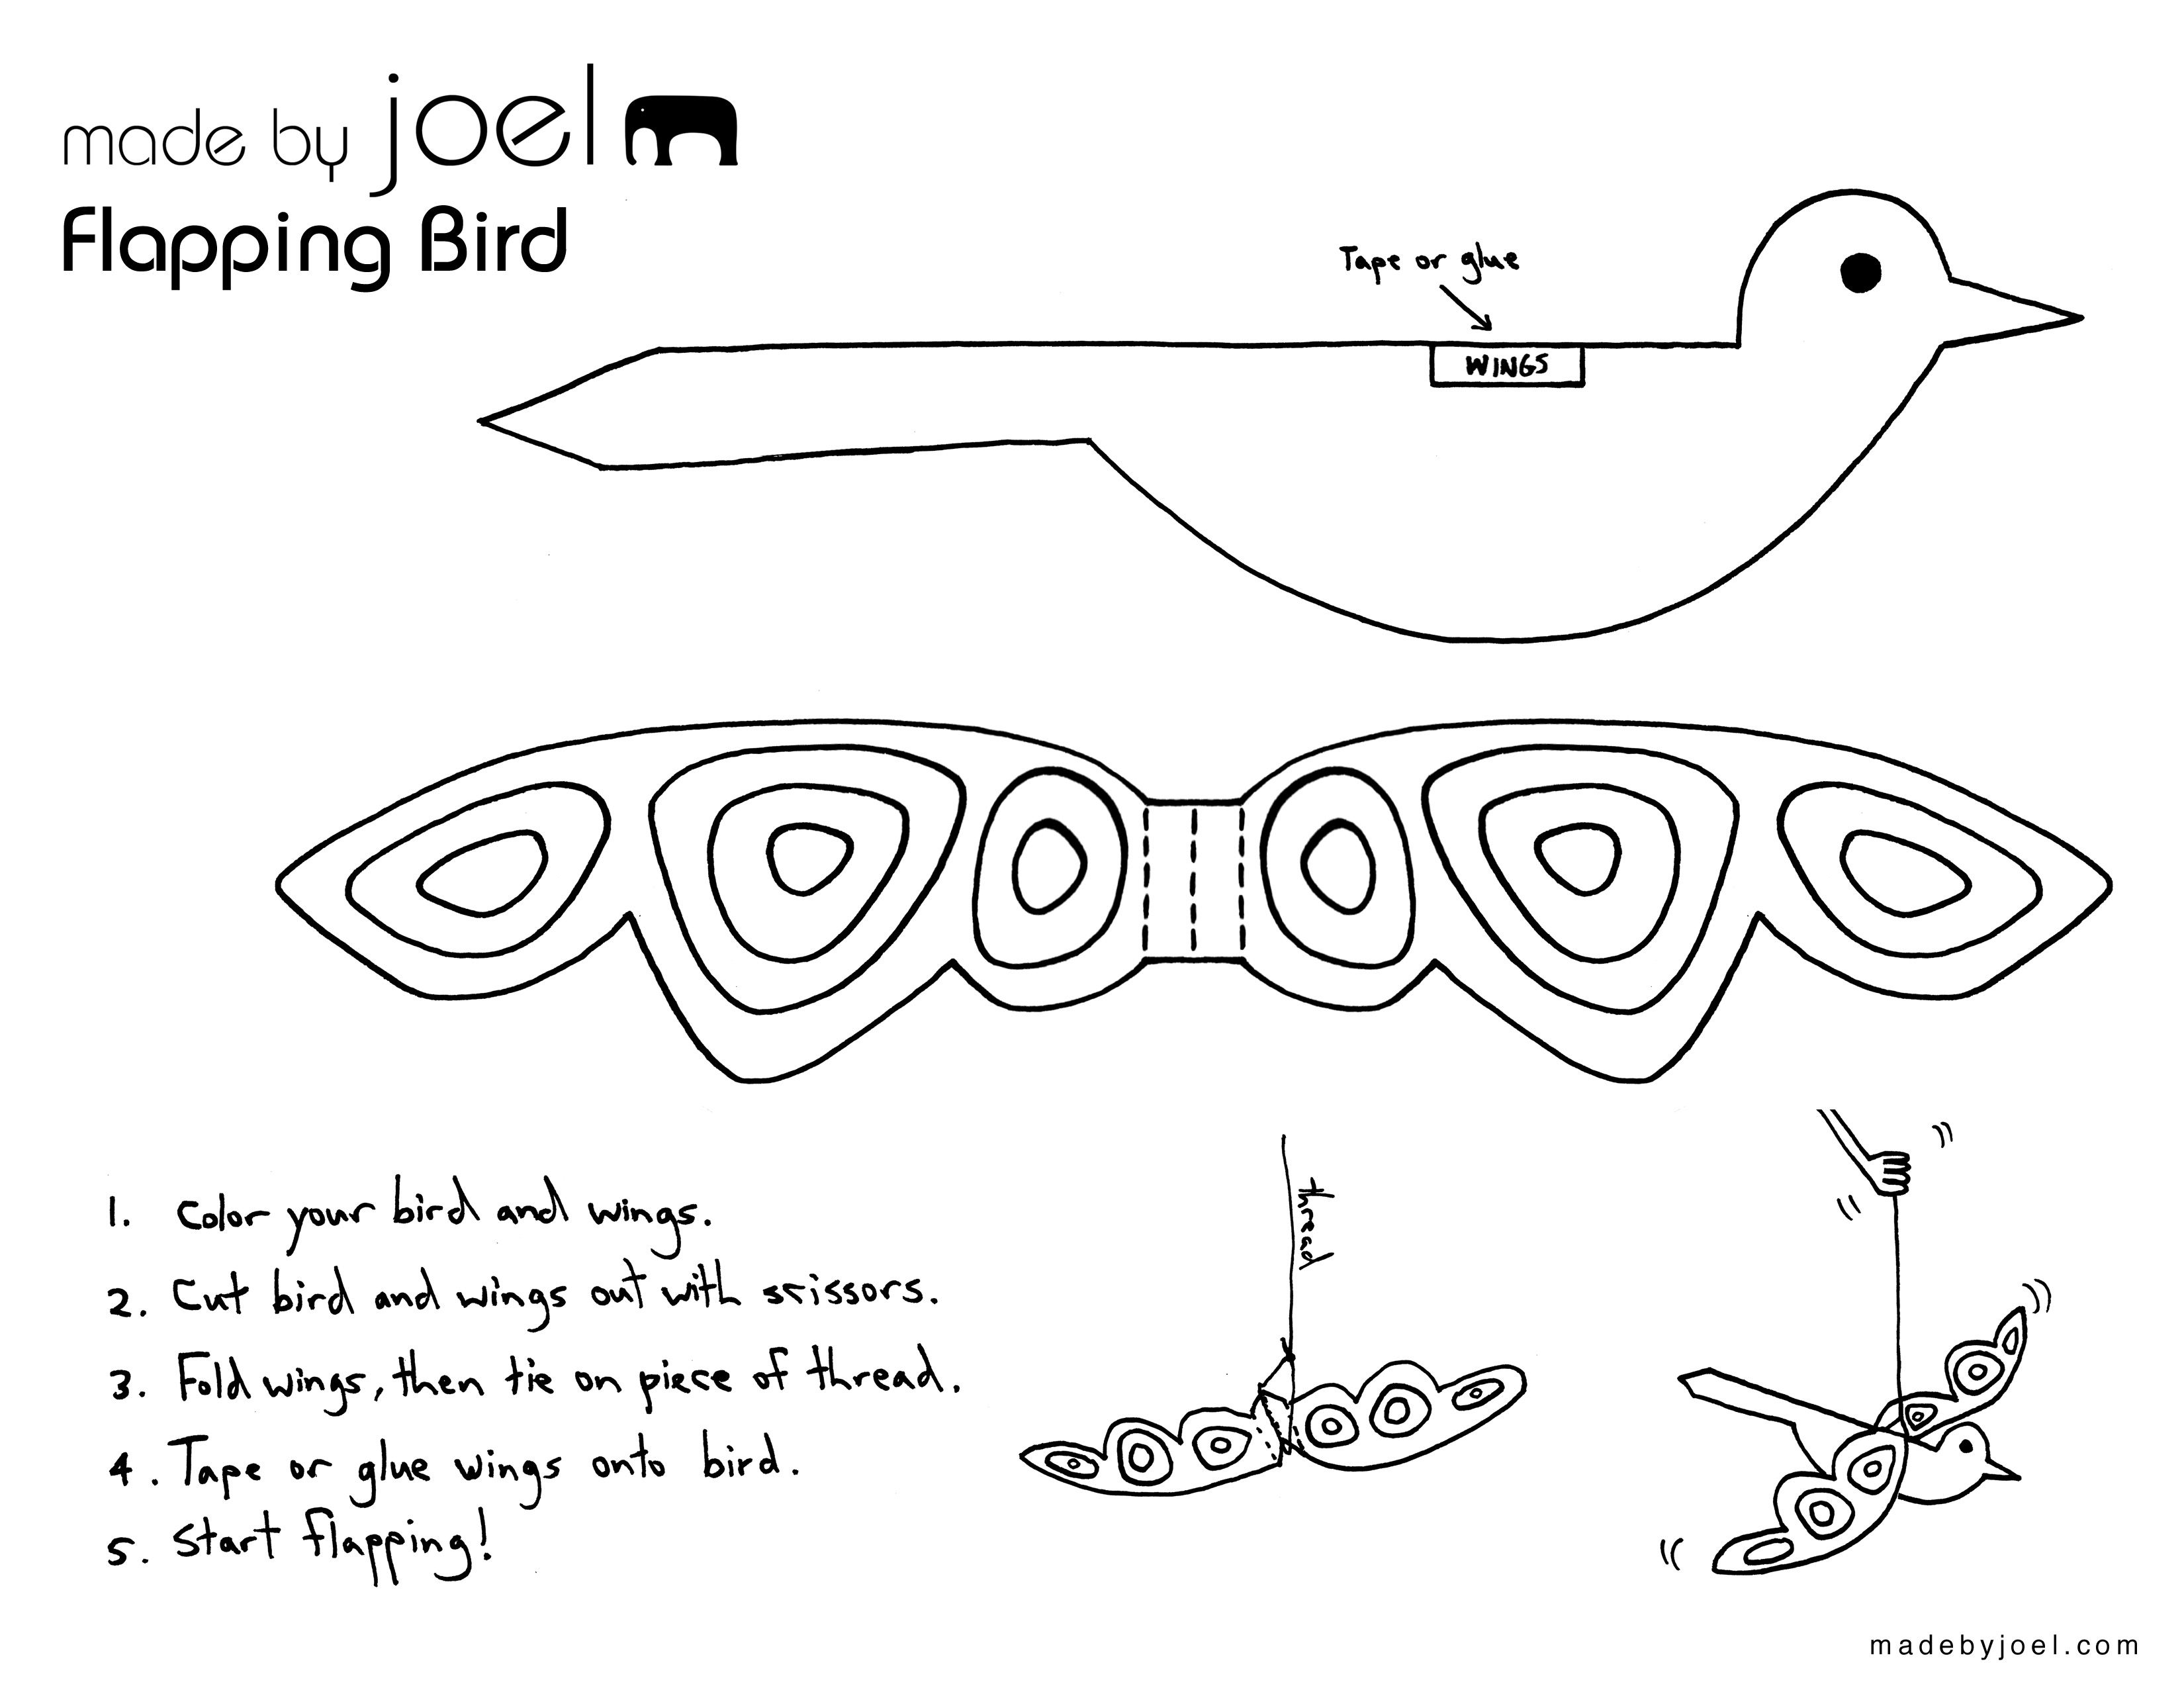 Flapping Paper Bird Toy (Made by Joel) | Paper birds, Bird ... - photo#49